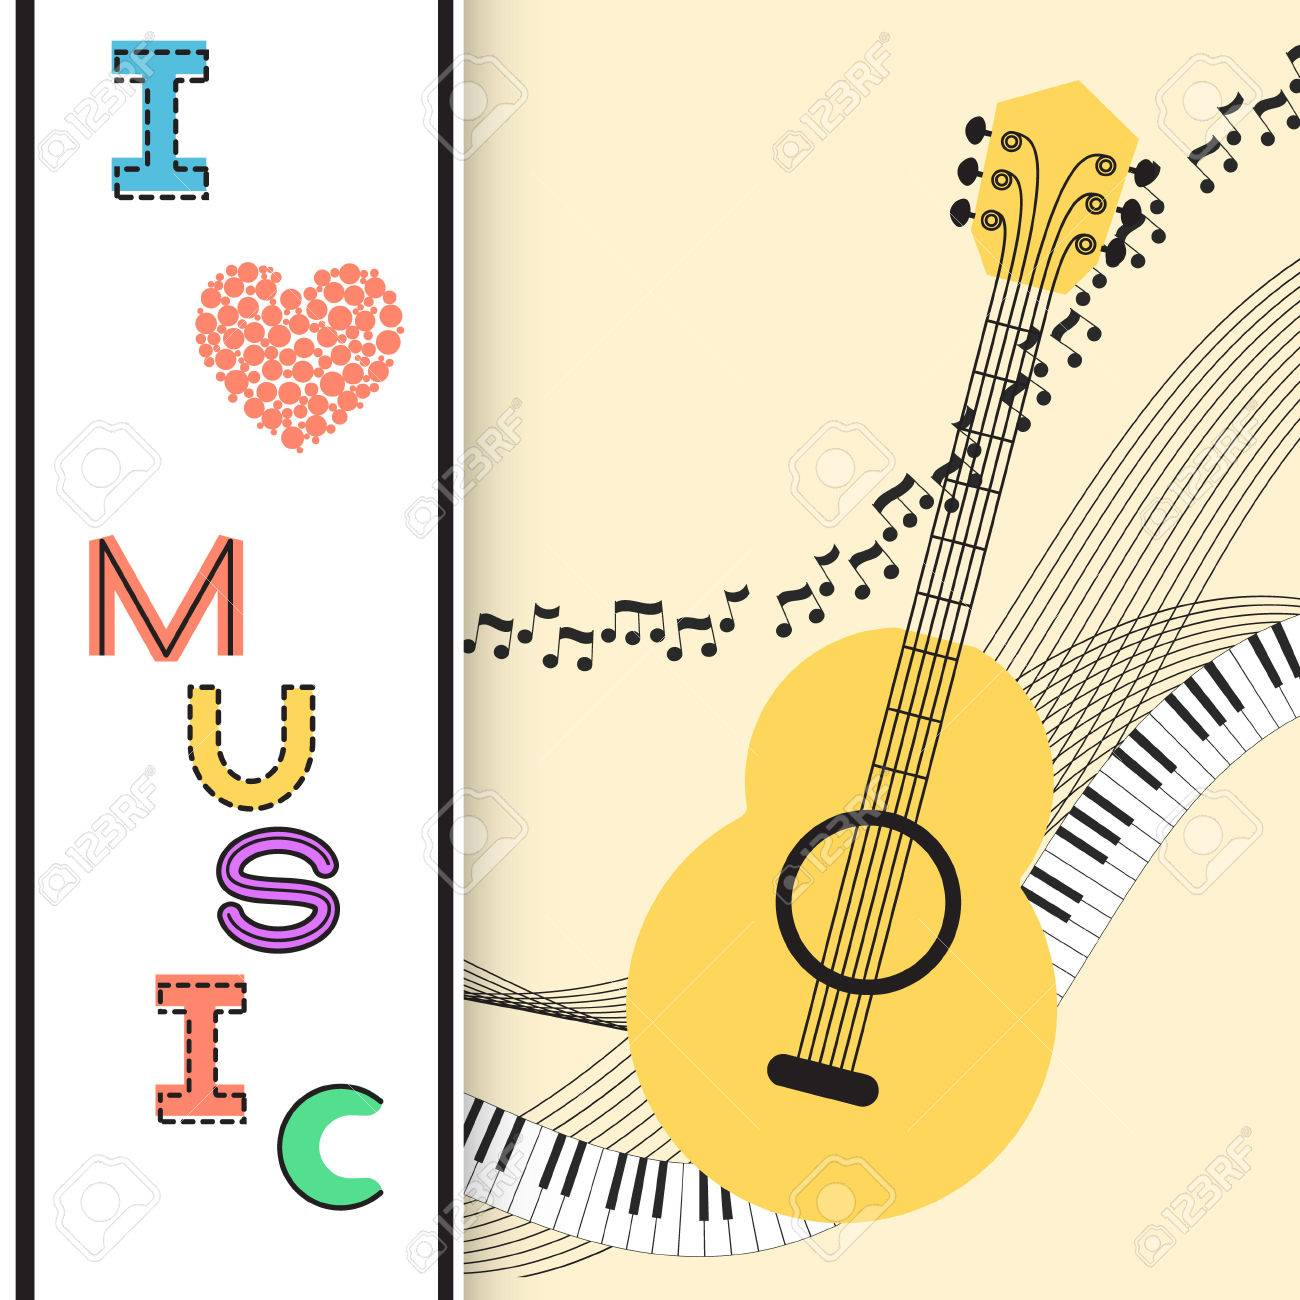 music background poster template greeting card invitation design background guitar nots